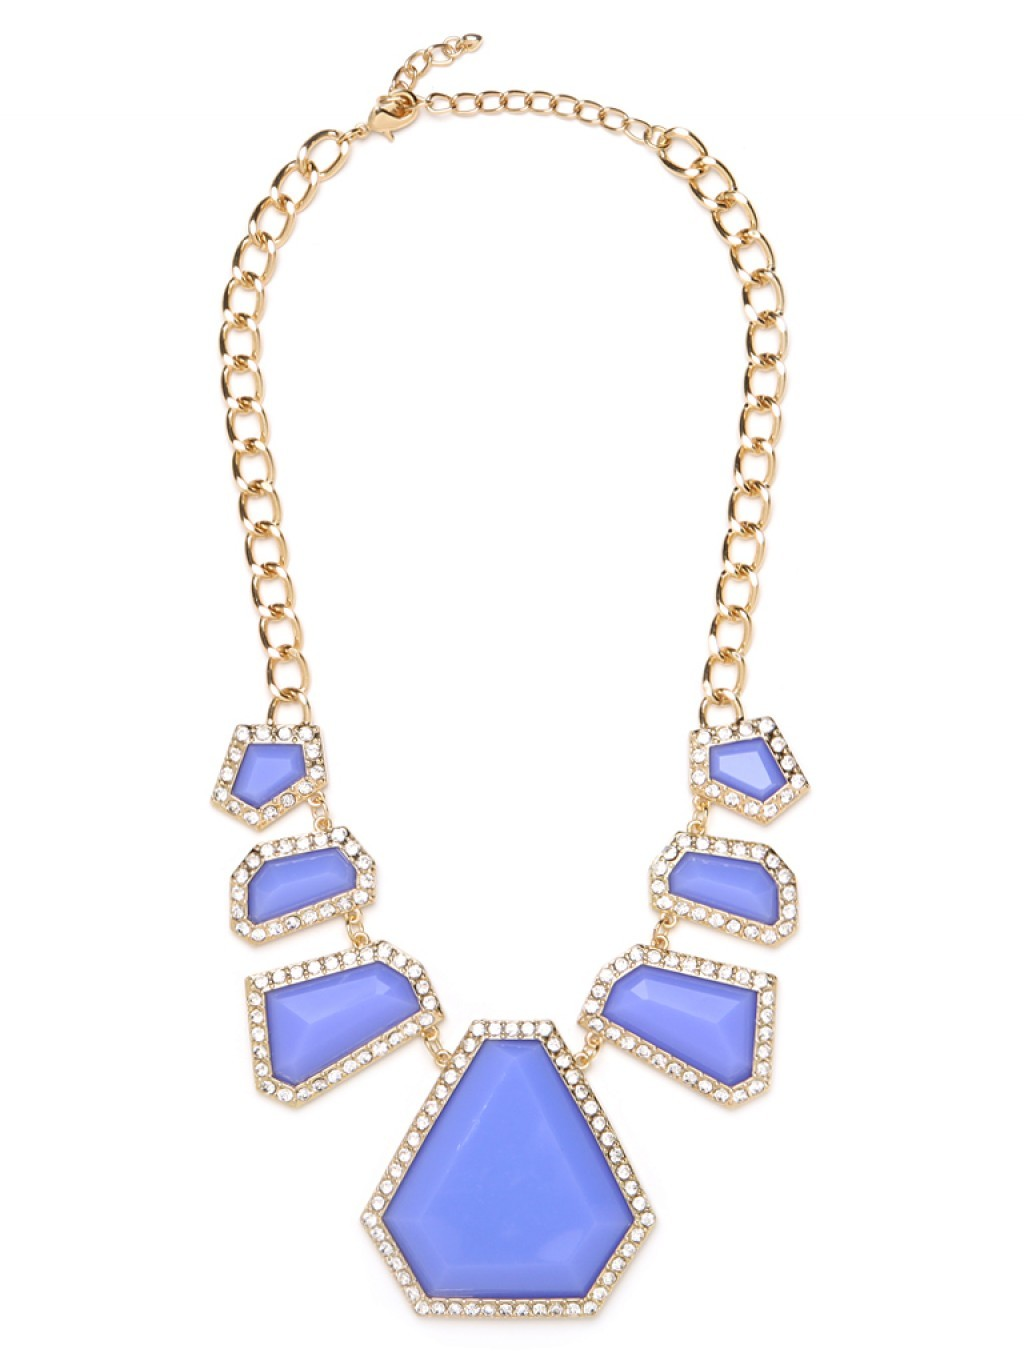 Statement-necklace-for-brides-gold-periwinkle.full